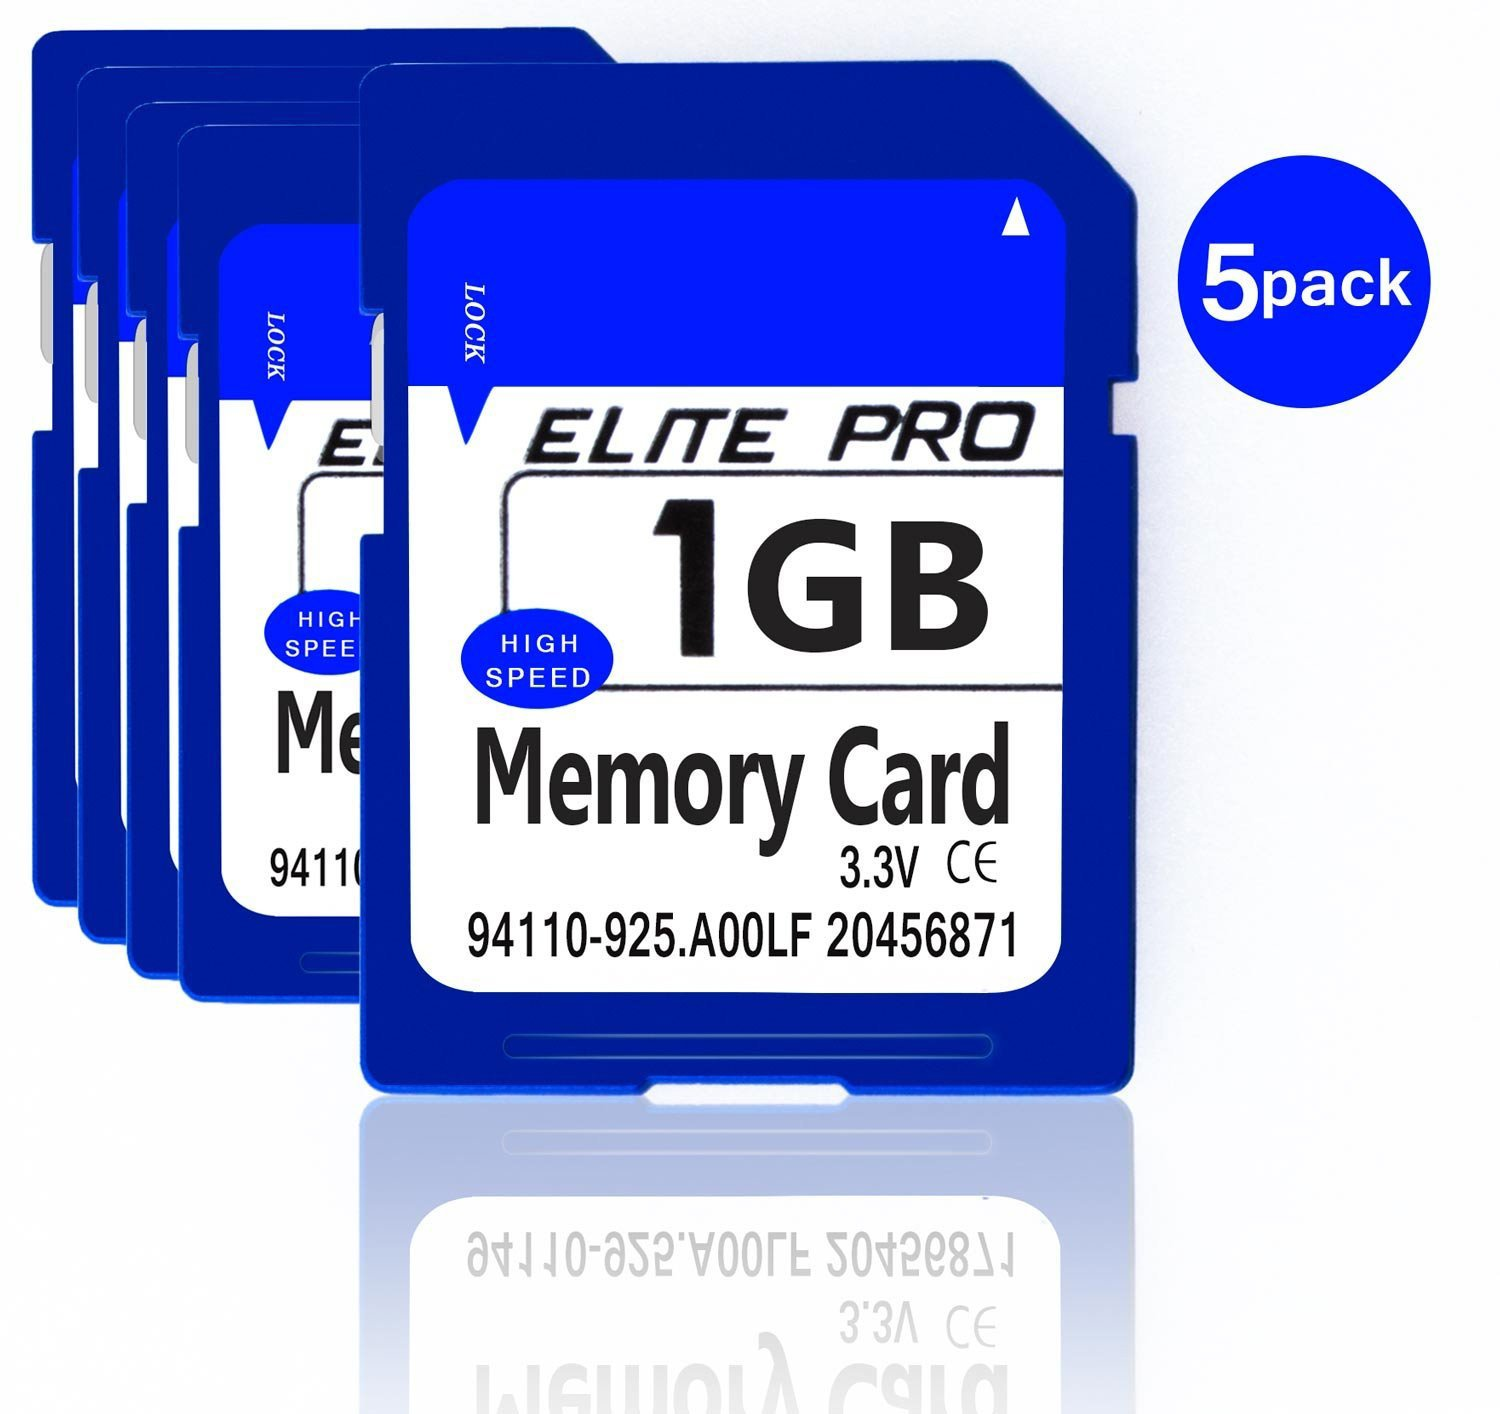 Estone 5pcs x1GB Security Digital SD Card ,High Speed ,Compatible with cameras ,camcorders , computers ,car readers and other SD compatible devices by Estone